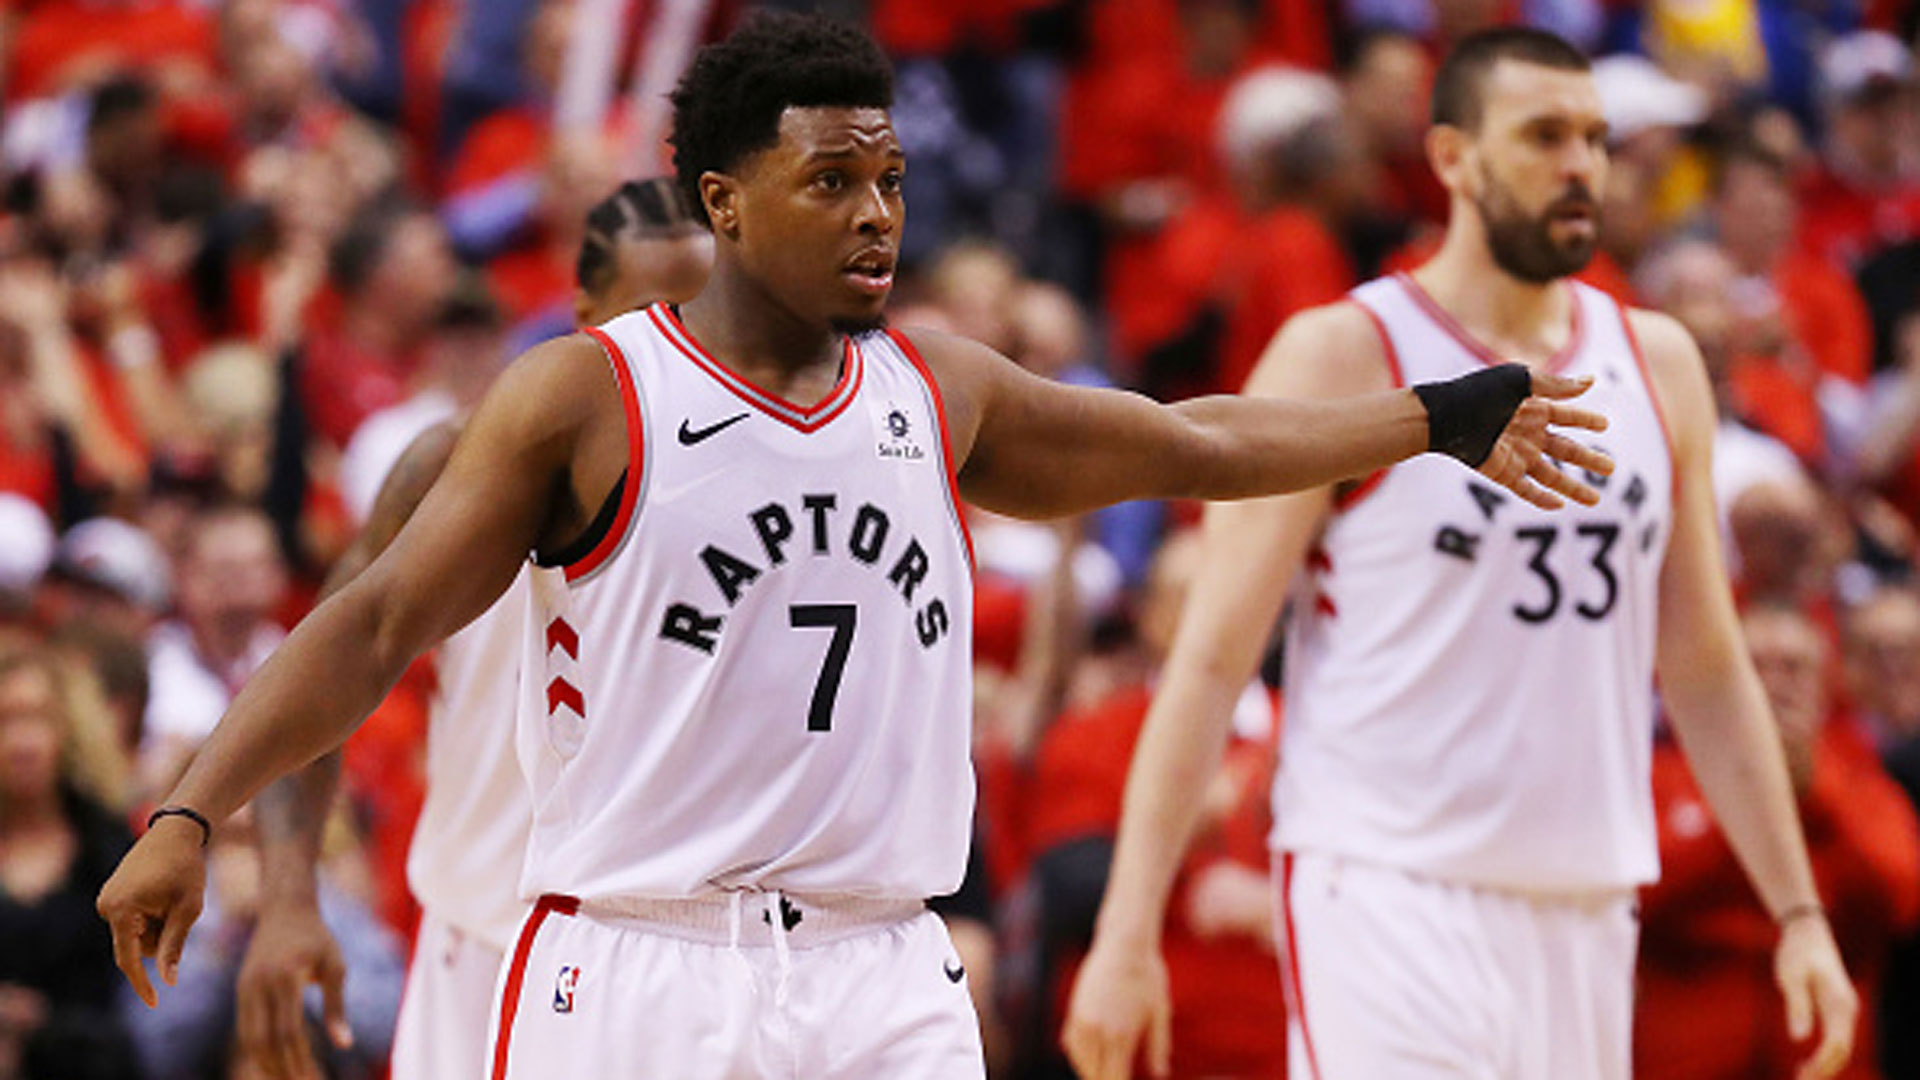 Report: Lowry says he's had no conversations with Raps on future